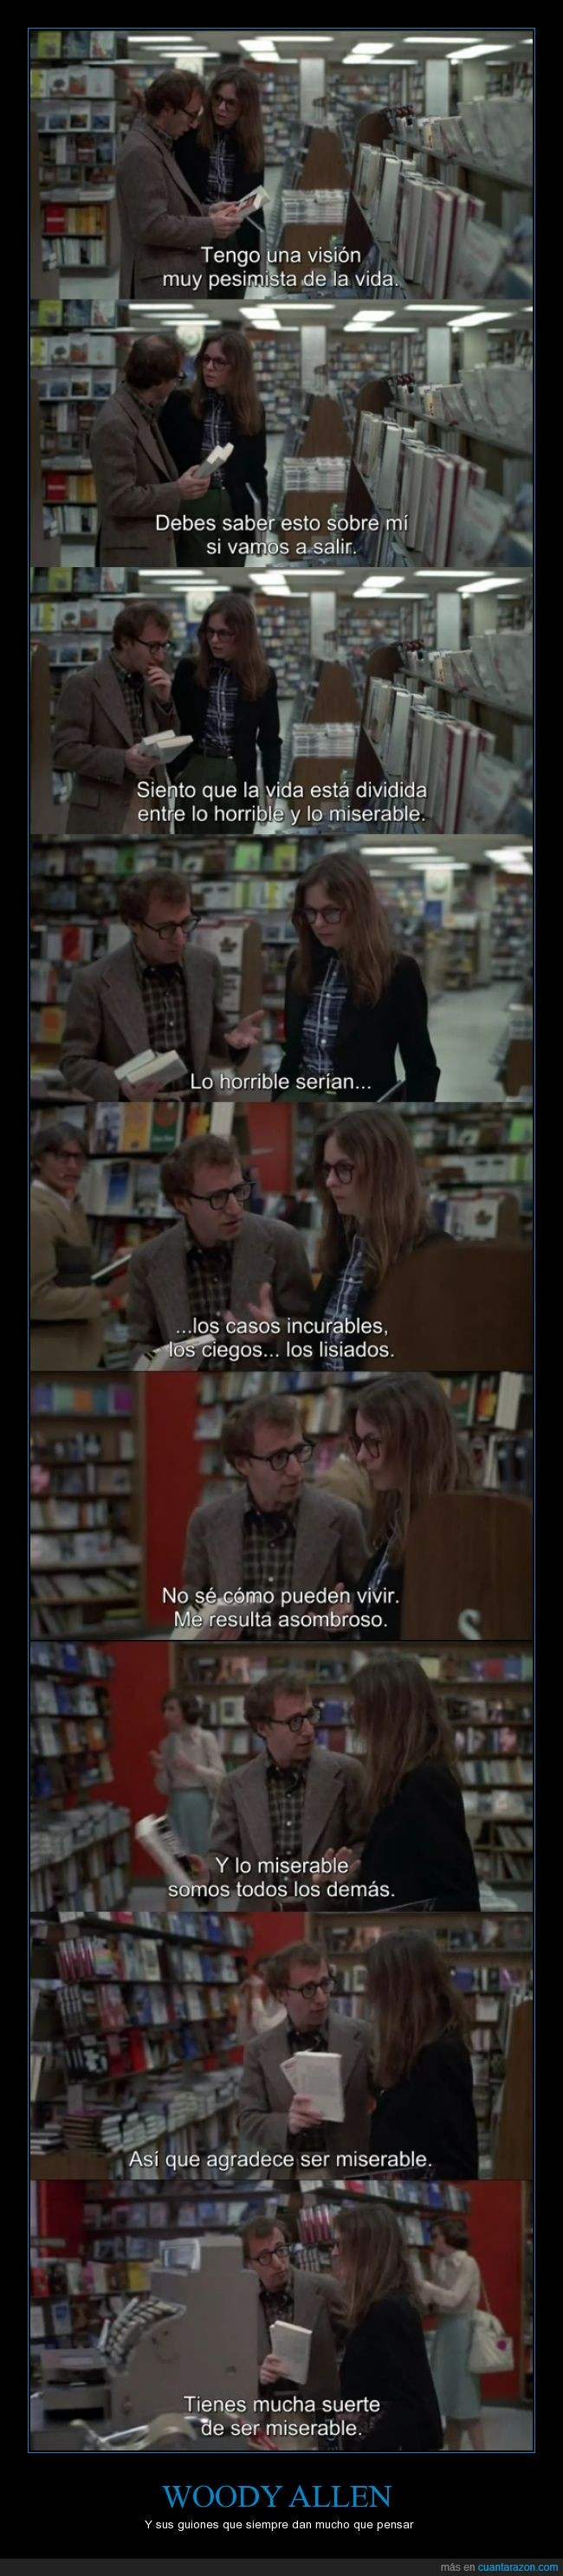 Alvy Singer,Annie Hall,guión,horrible,miserable,pesimismo,pesimista,suerte,Woody Allen